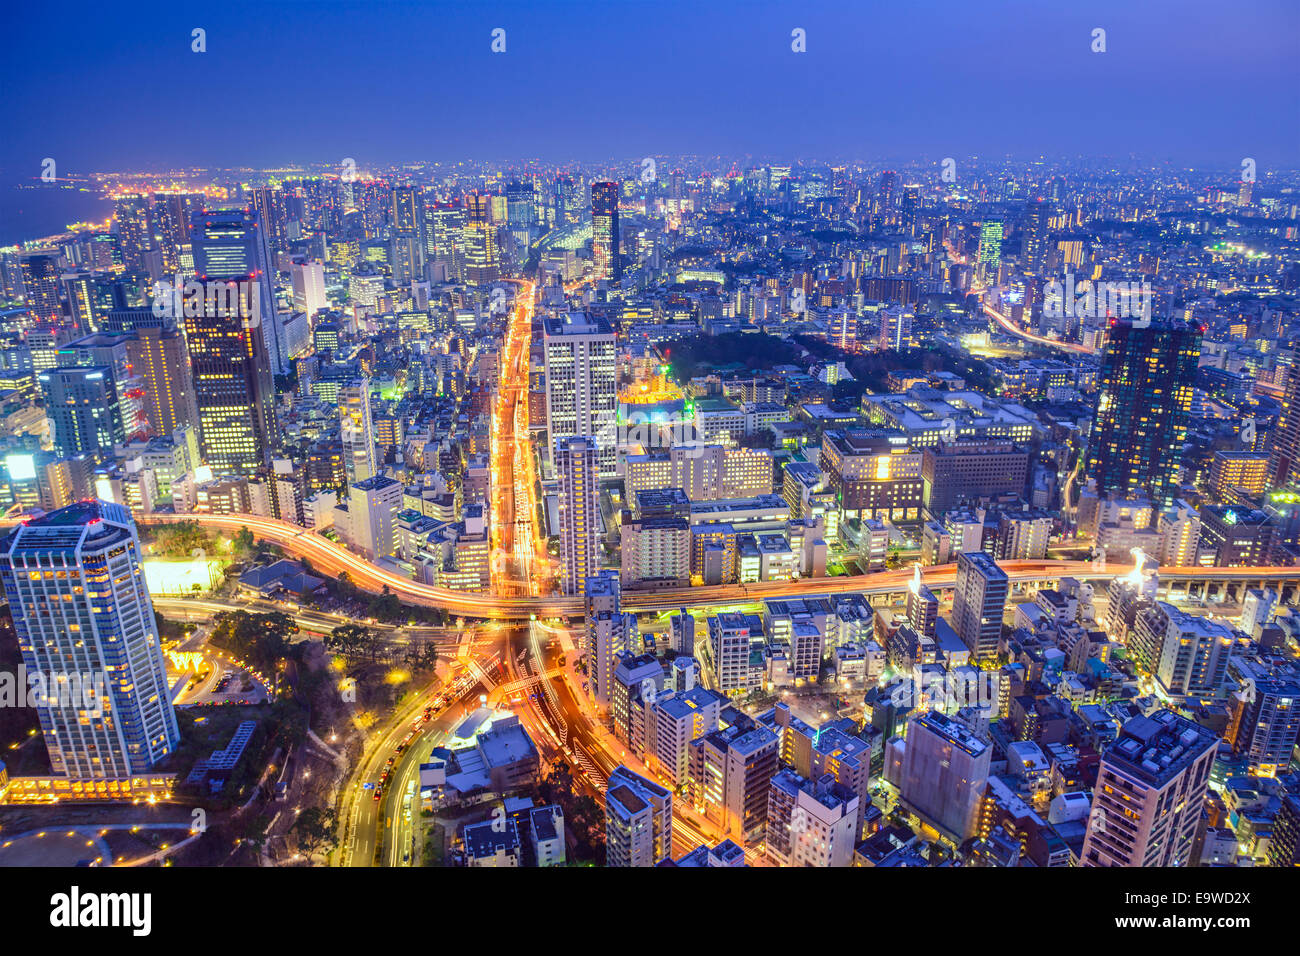 Tokyo, Japan cityscape at dusk above highway junction. - Stock Image